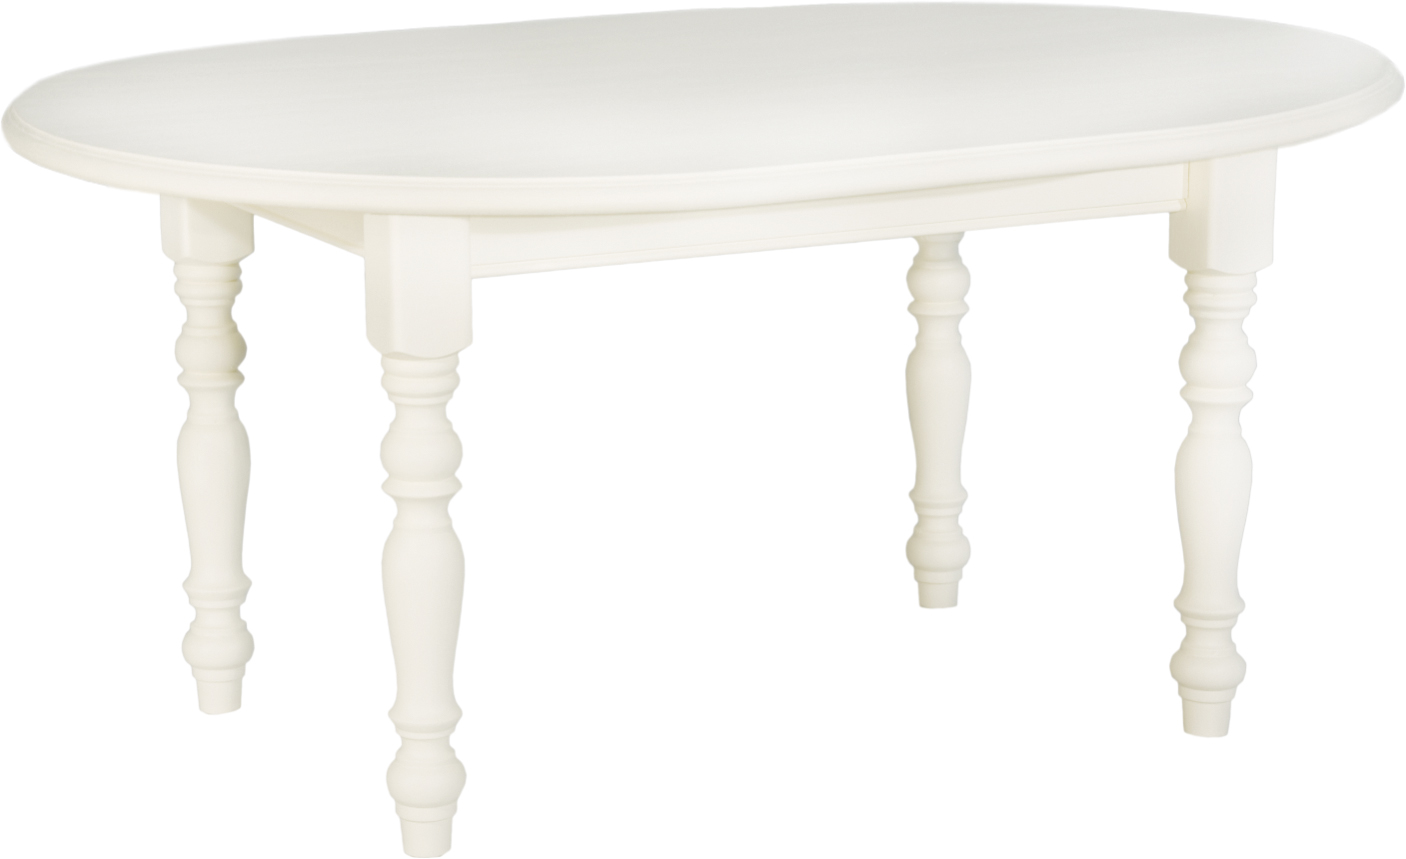 HERITAGE TRADITIONAL LINE OVAL DINING TABLE  w 160 x d 120 x h 78 cm  € 850 ( 30% OFF, NOW € 595 )  Product Code: TL-1214  This piece may be ordered in any of the Heritage colours and finishes.